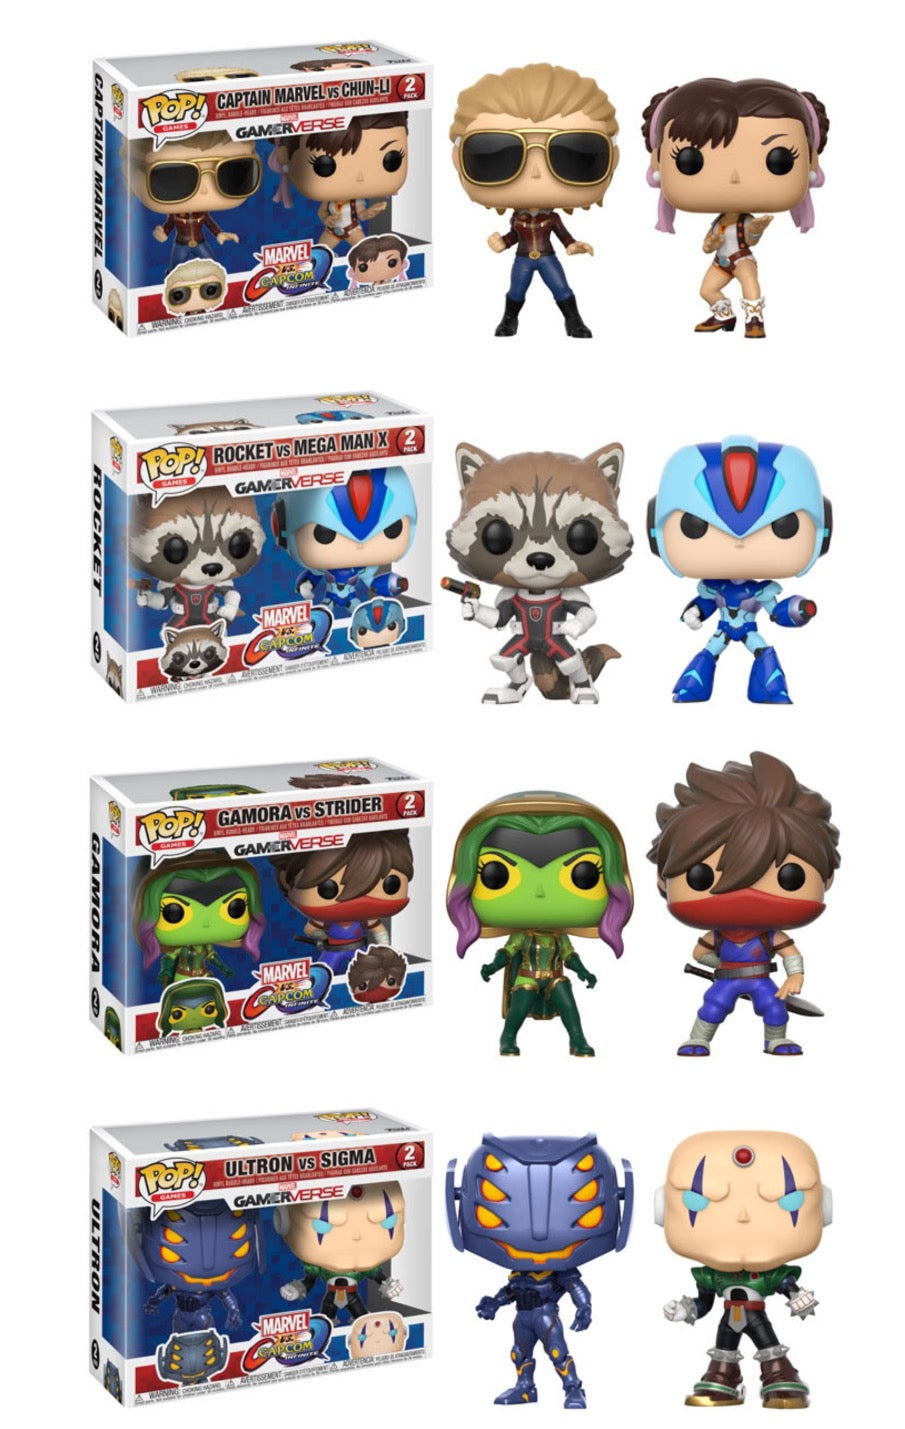 Set of 4 - Marvel vs Capcom 2 Packs - Funko Pop Vinyl Figures